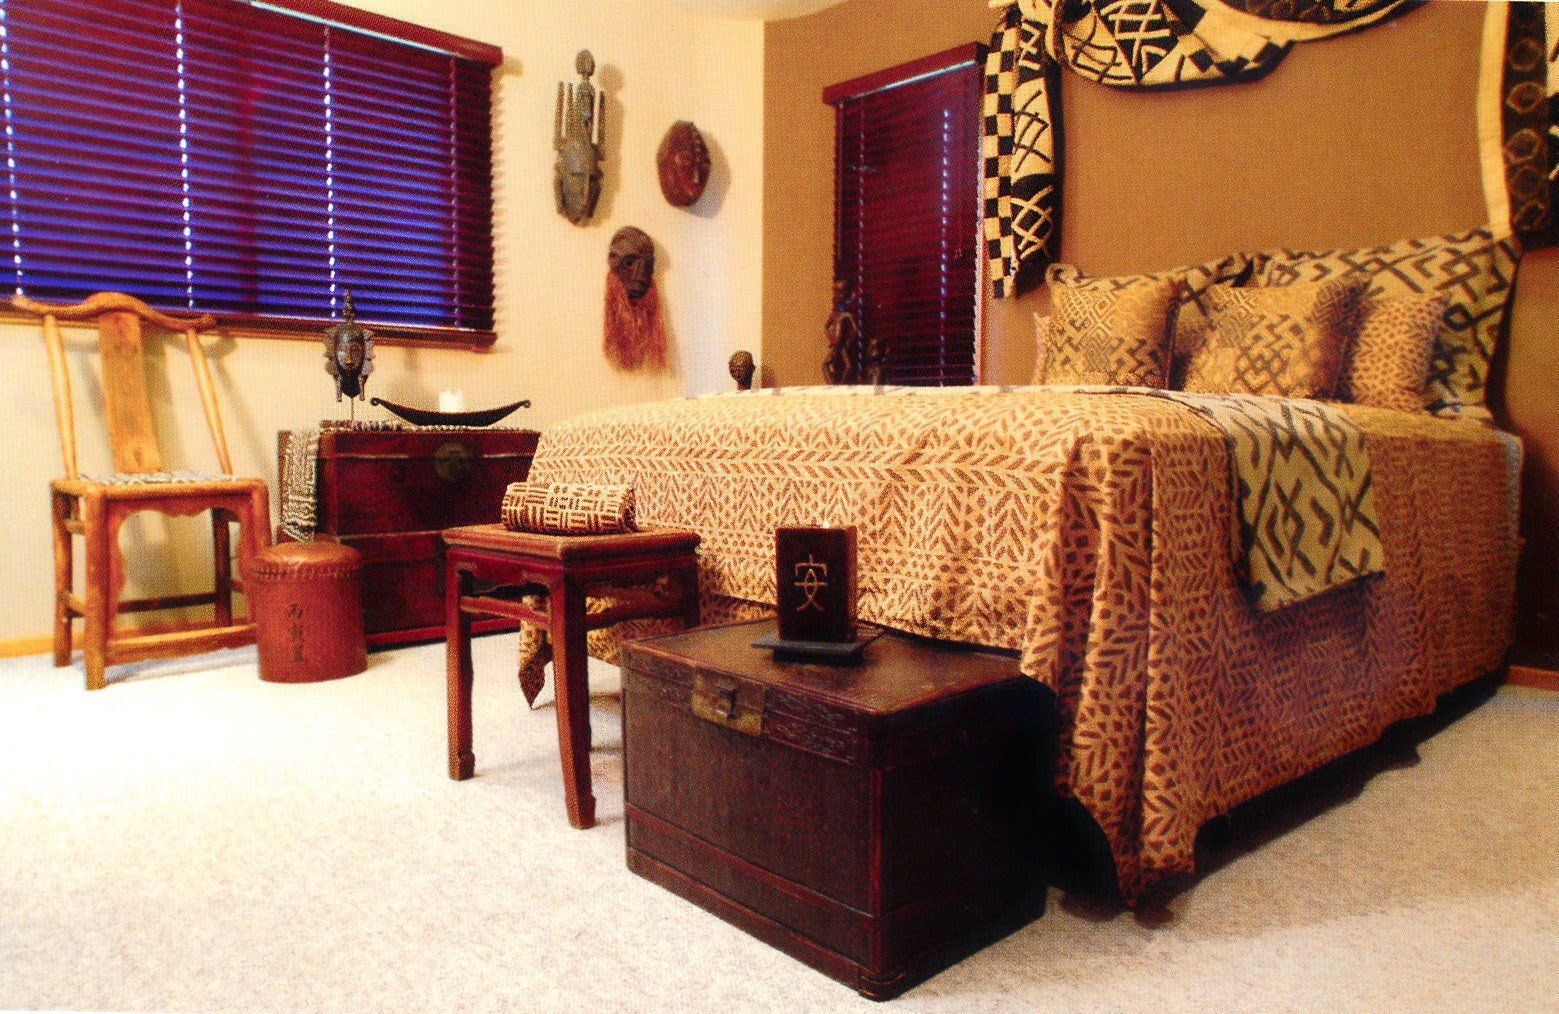 Foundation dezin decor bedroom design in african way for South african bedroom designs